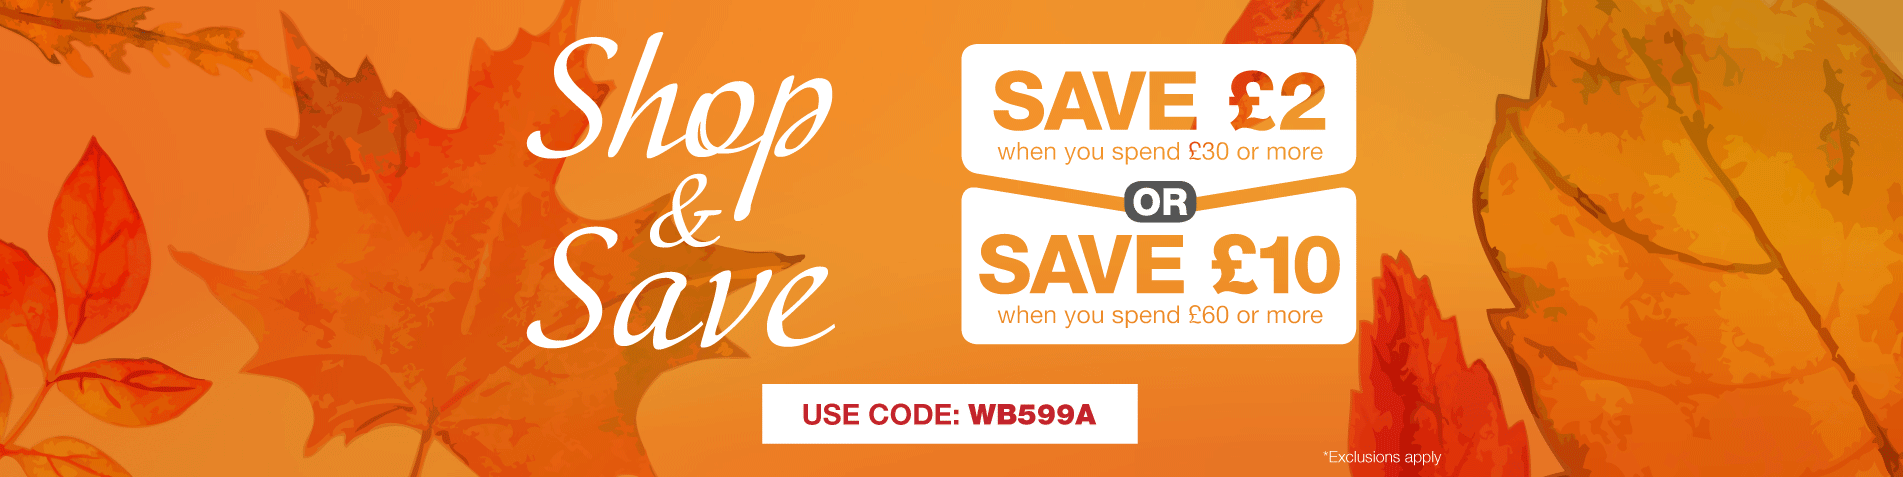 Shop and Save - up to £10 off